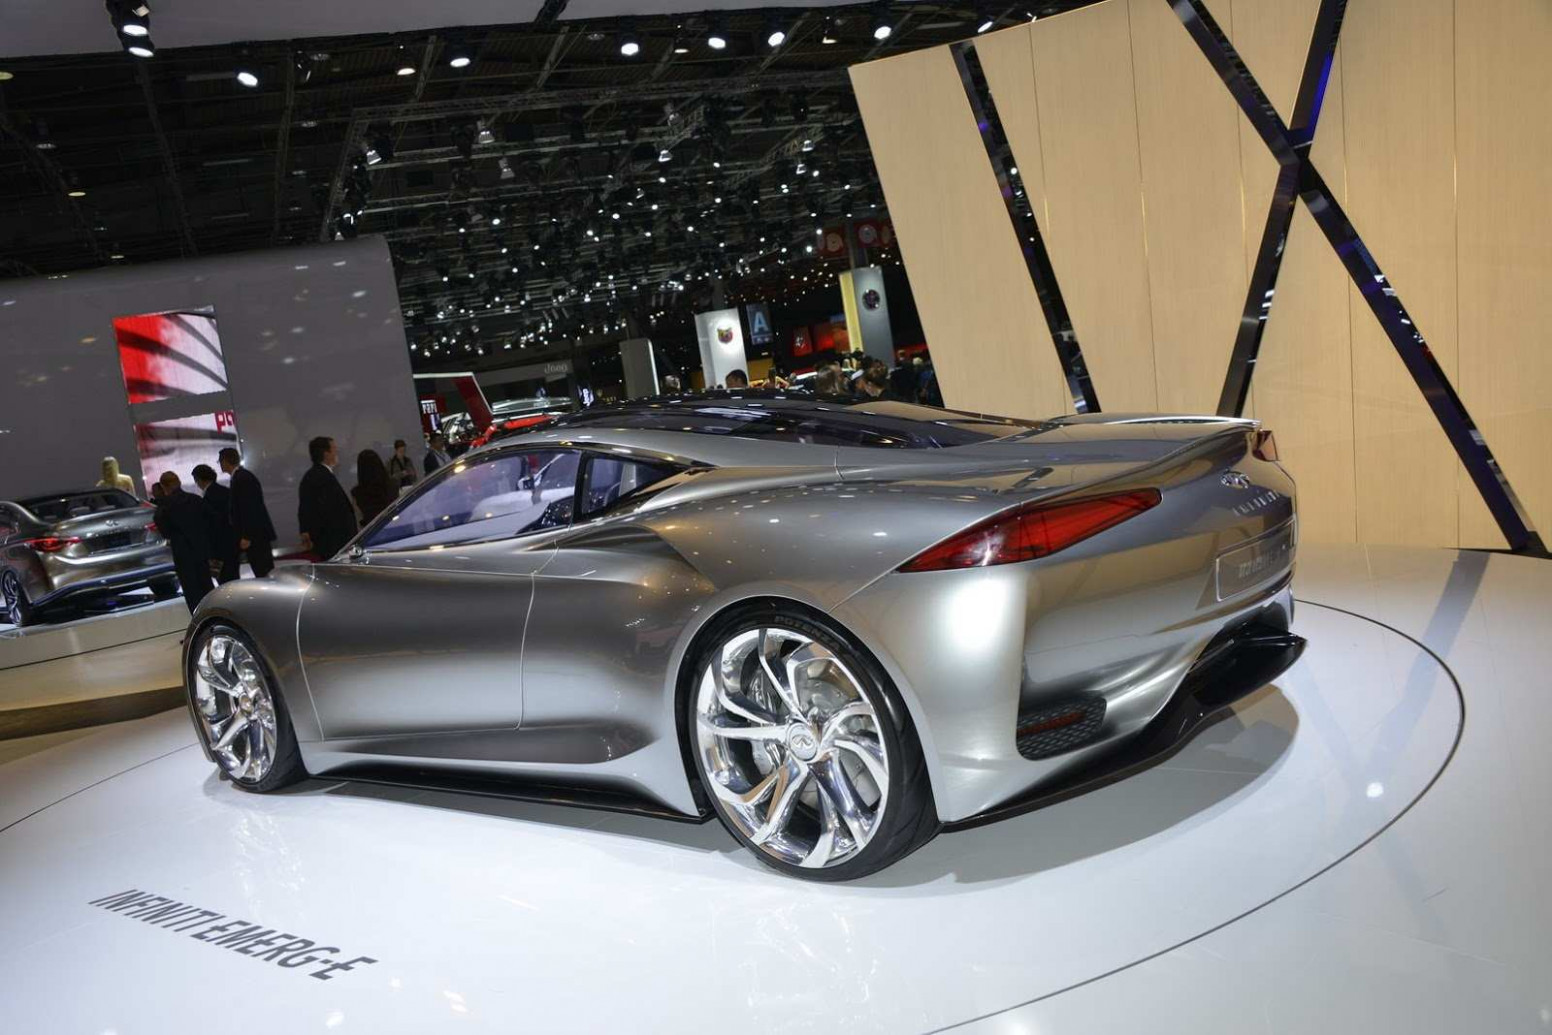 6 Gallery of 6 Infiniti G6 Price and Review with 6 ..